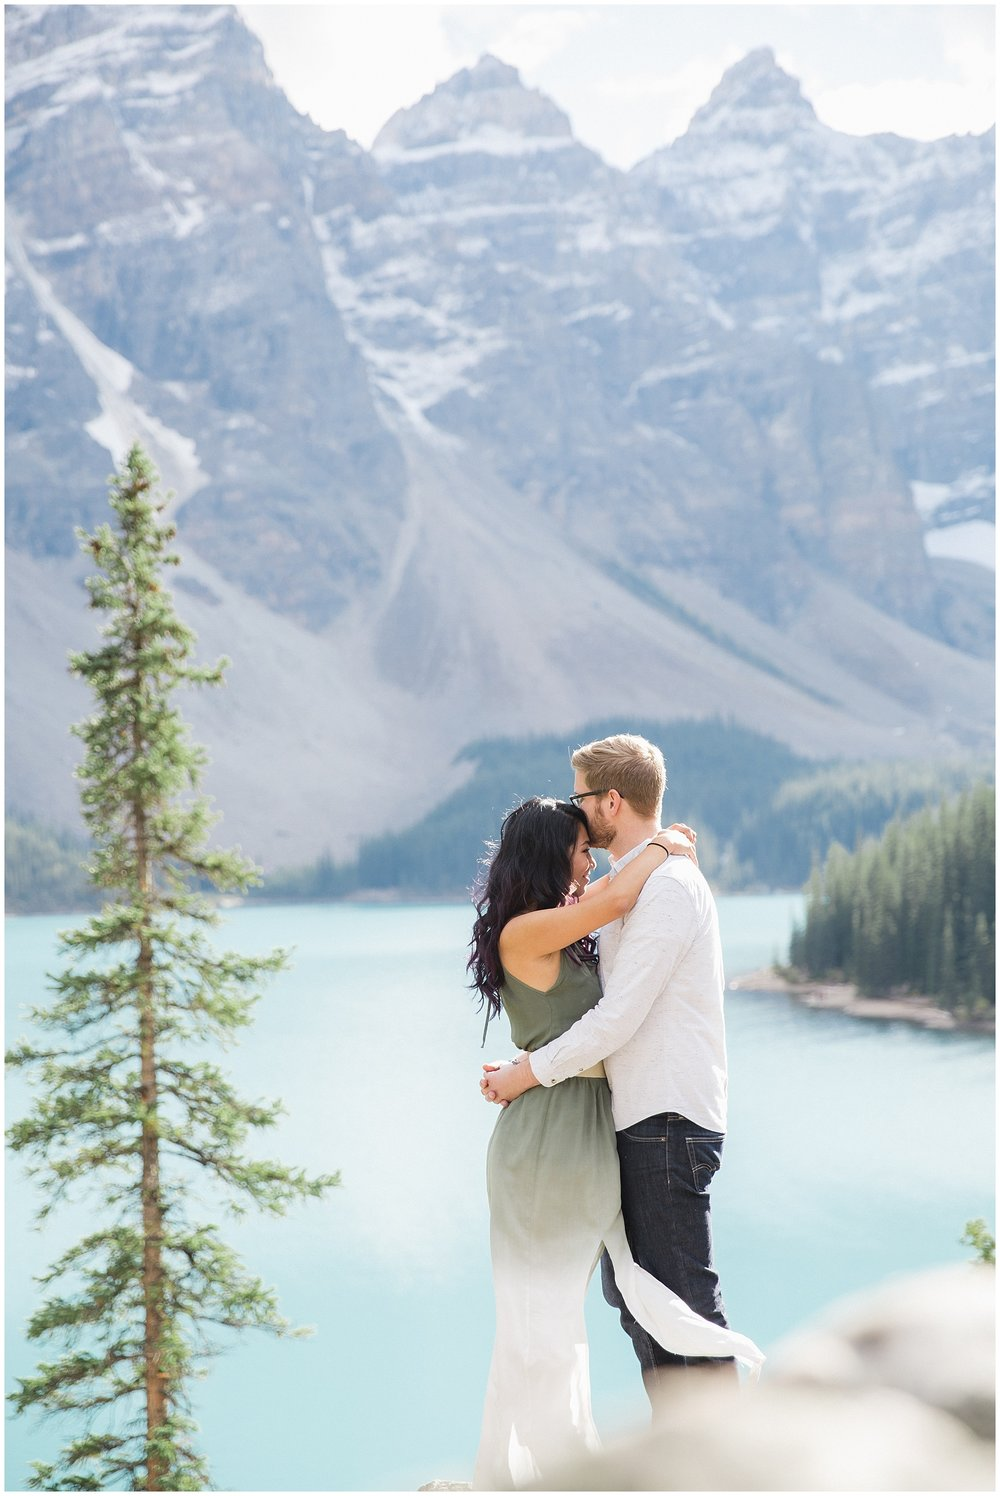 Lake_Moraine_Engagement_Photography_JandC_09_blog.jpg